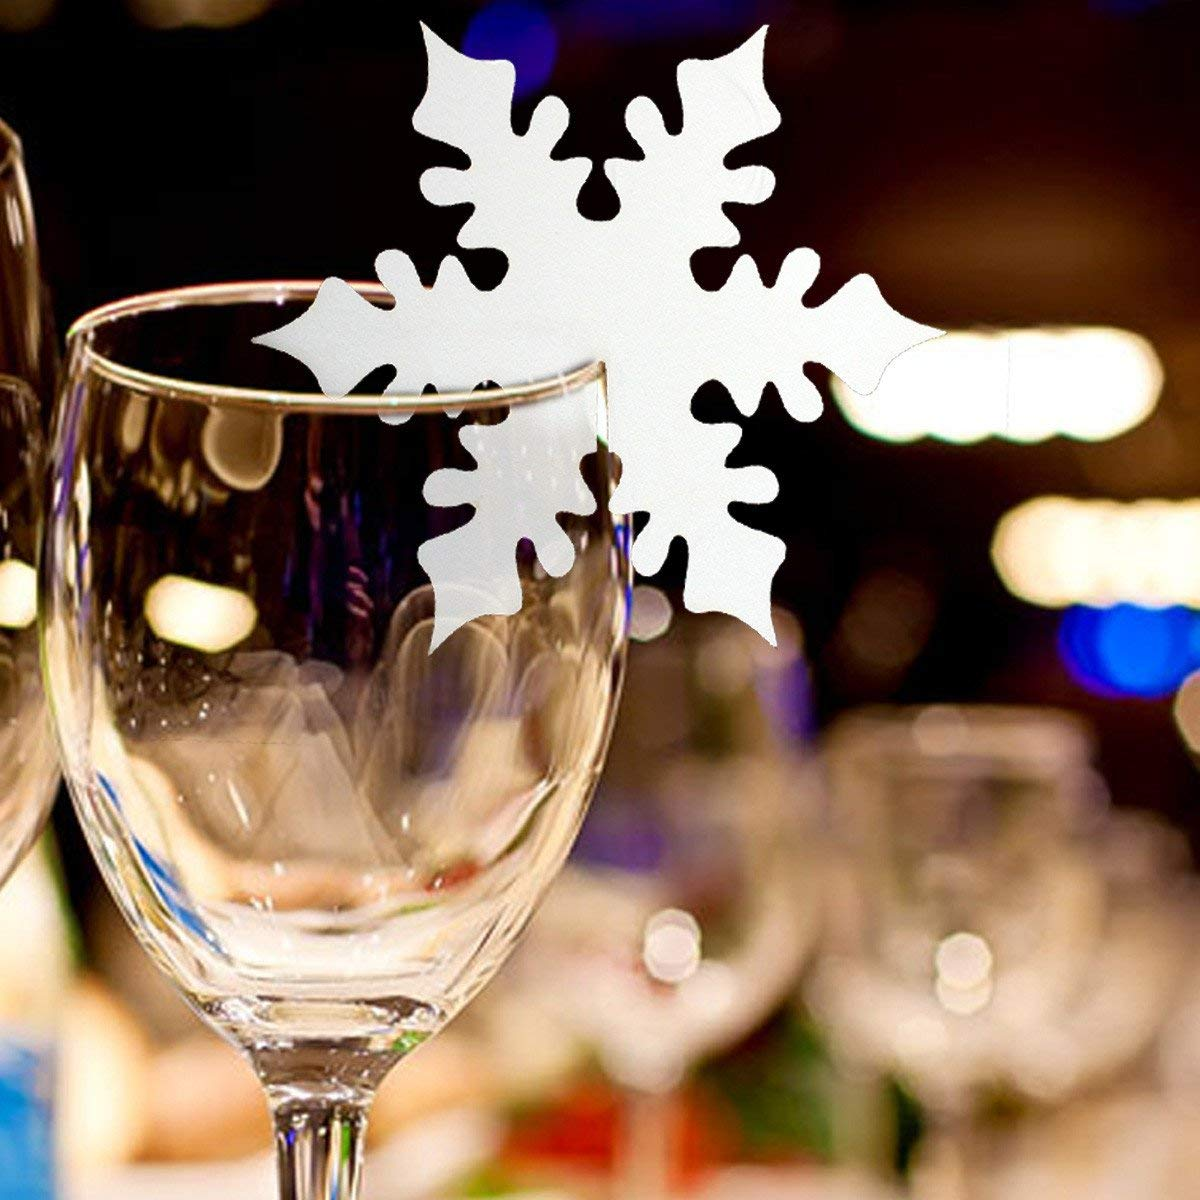 50pcs Snowflake Table Name Place Cards Wine Glass Xmas Wedding Party Decor